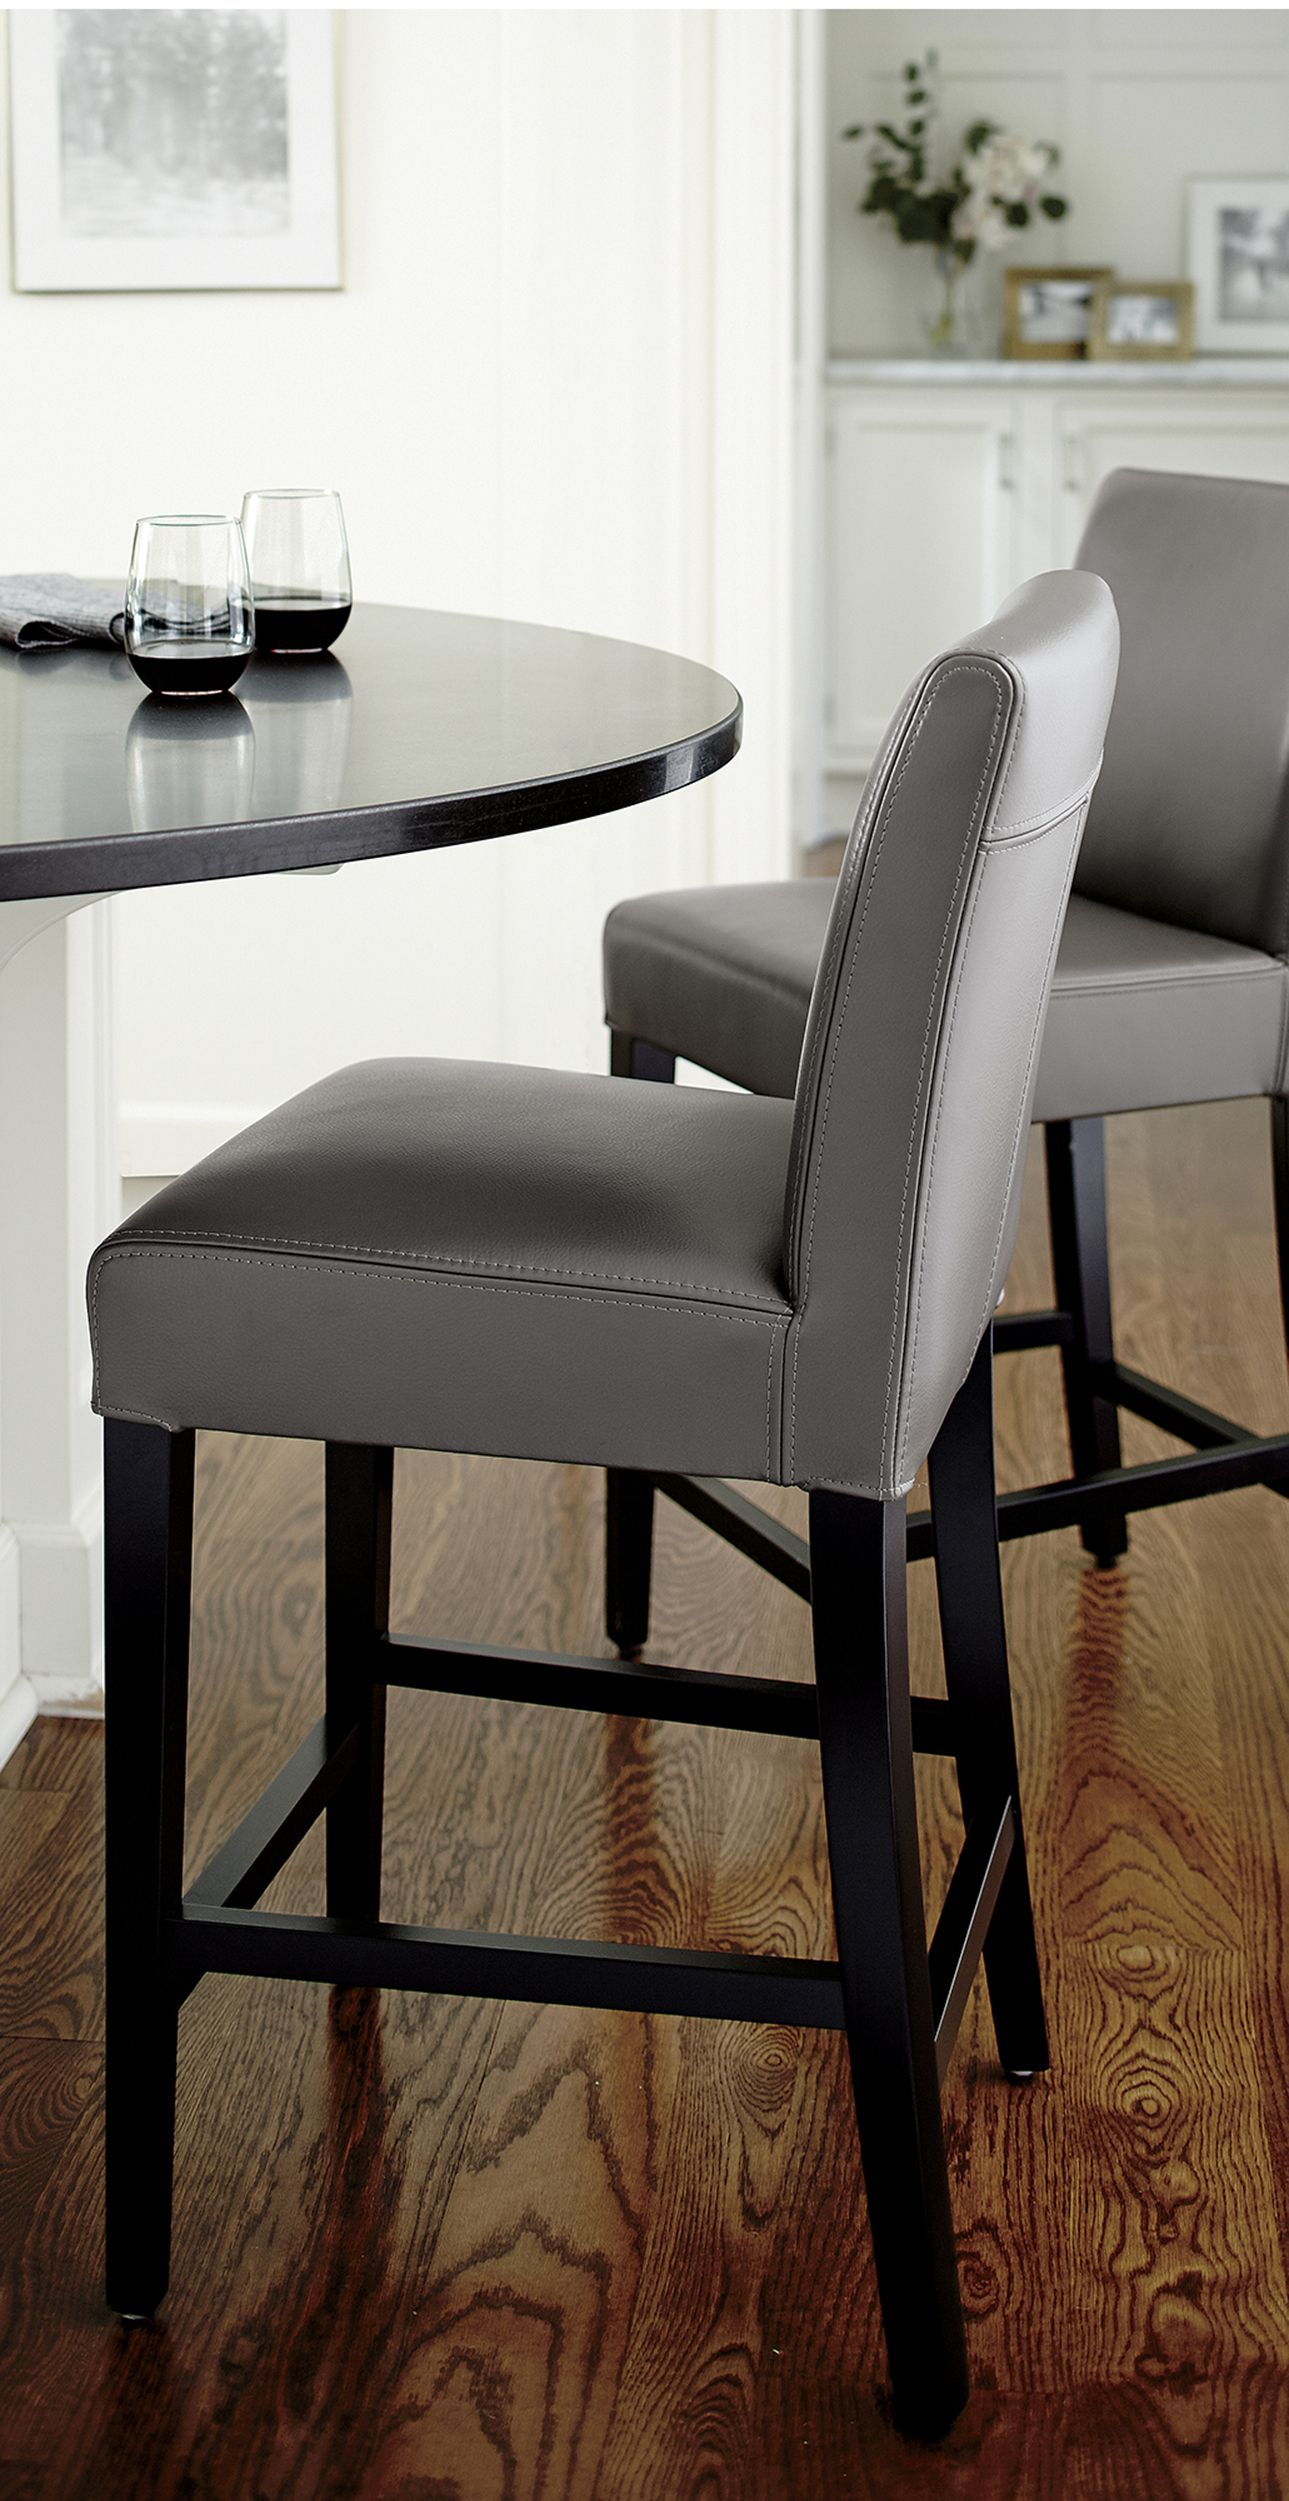 Lowe Smoke Leather Bar Stools Comfortable Bar Stools Leather